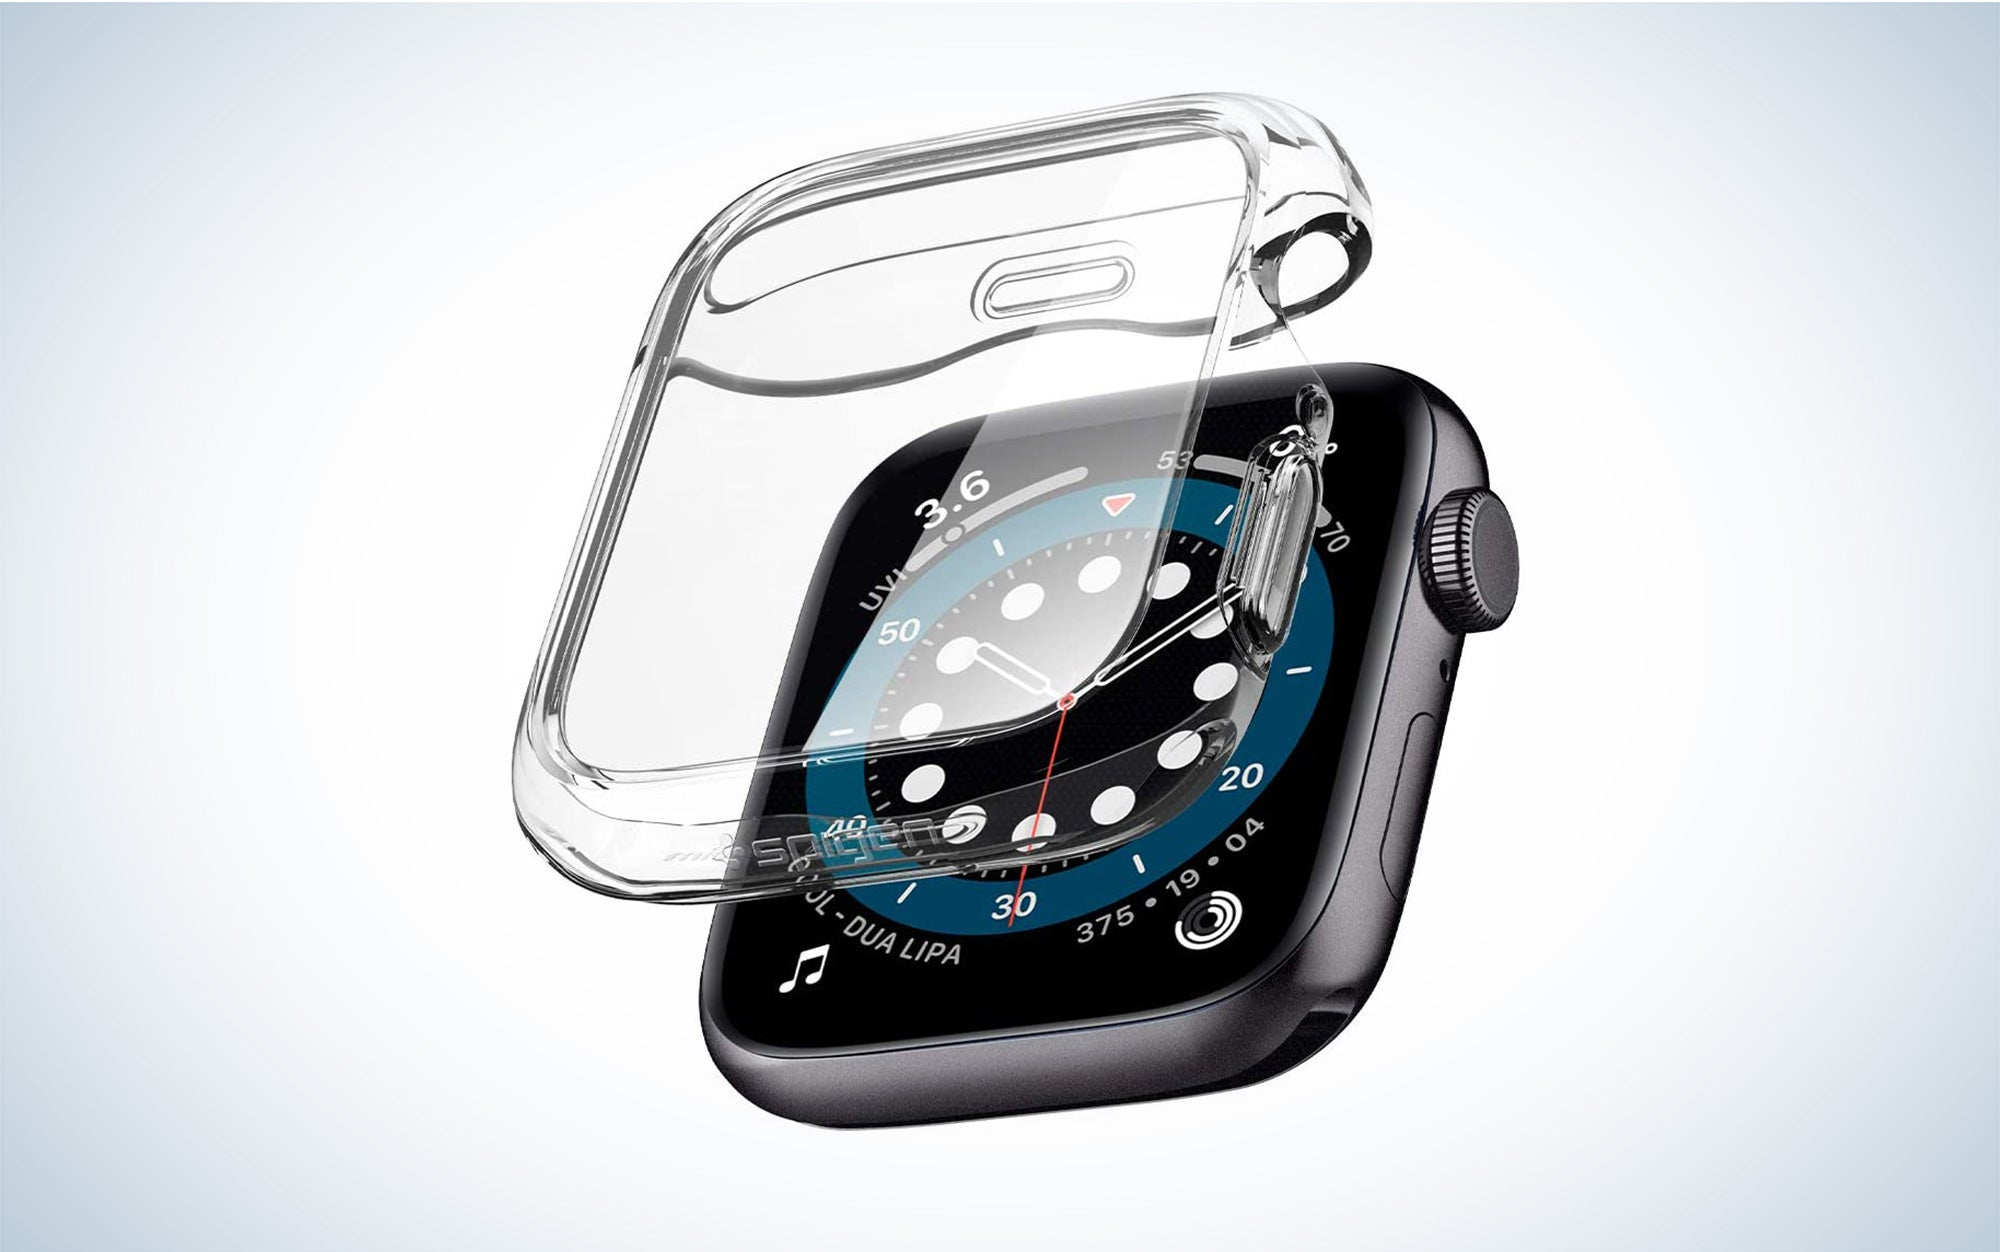 Julk is our pick for the best apple watch case